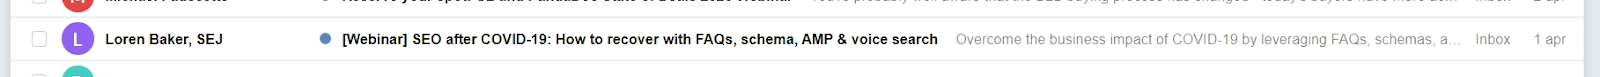 A relevant email subject line